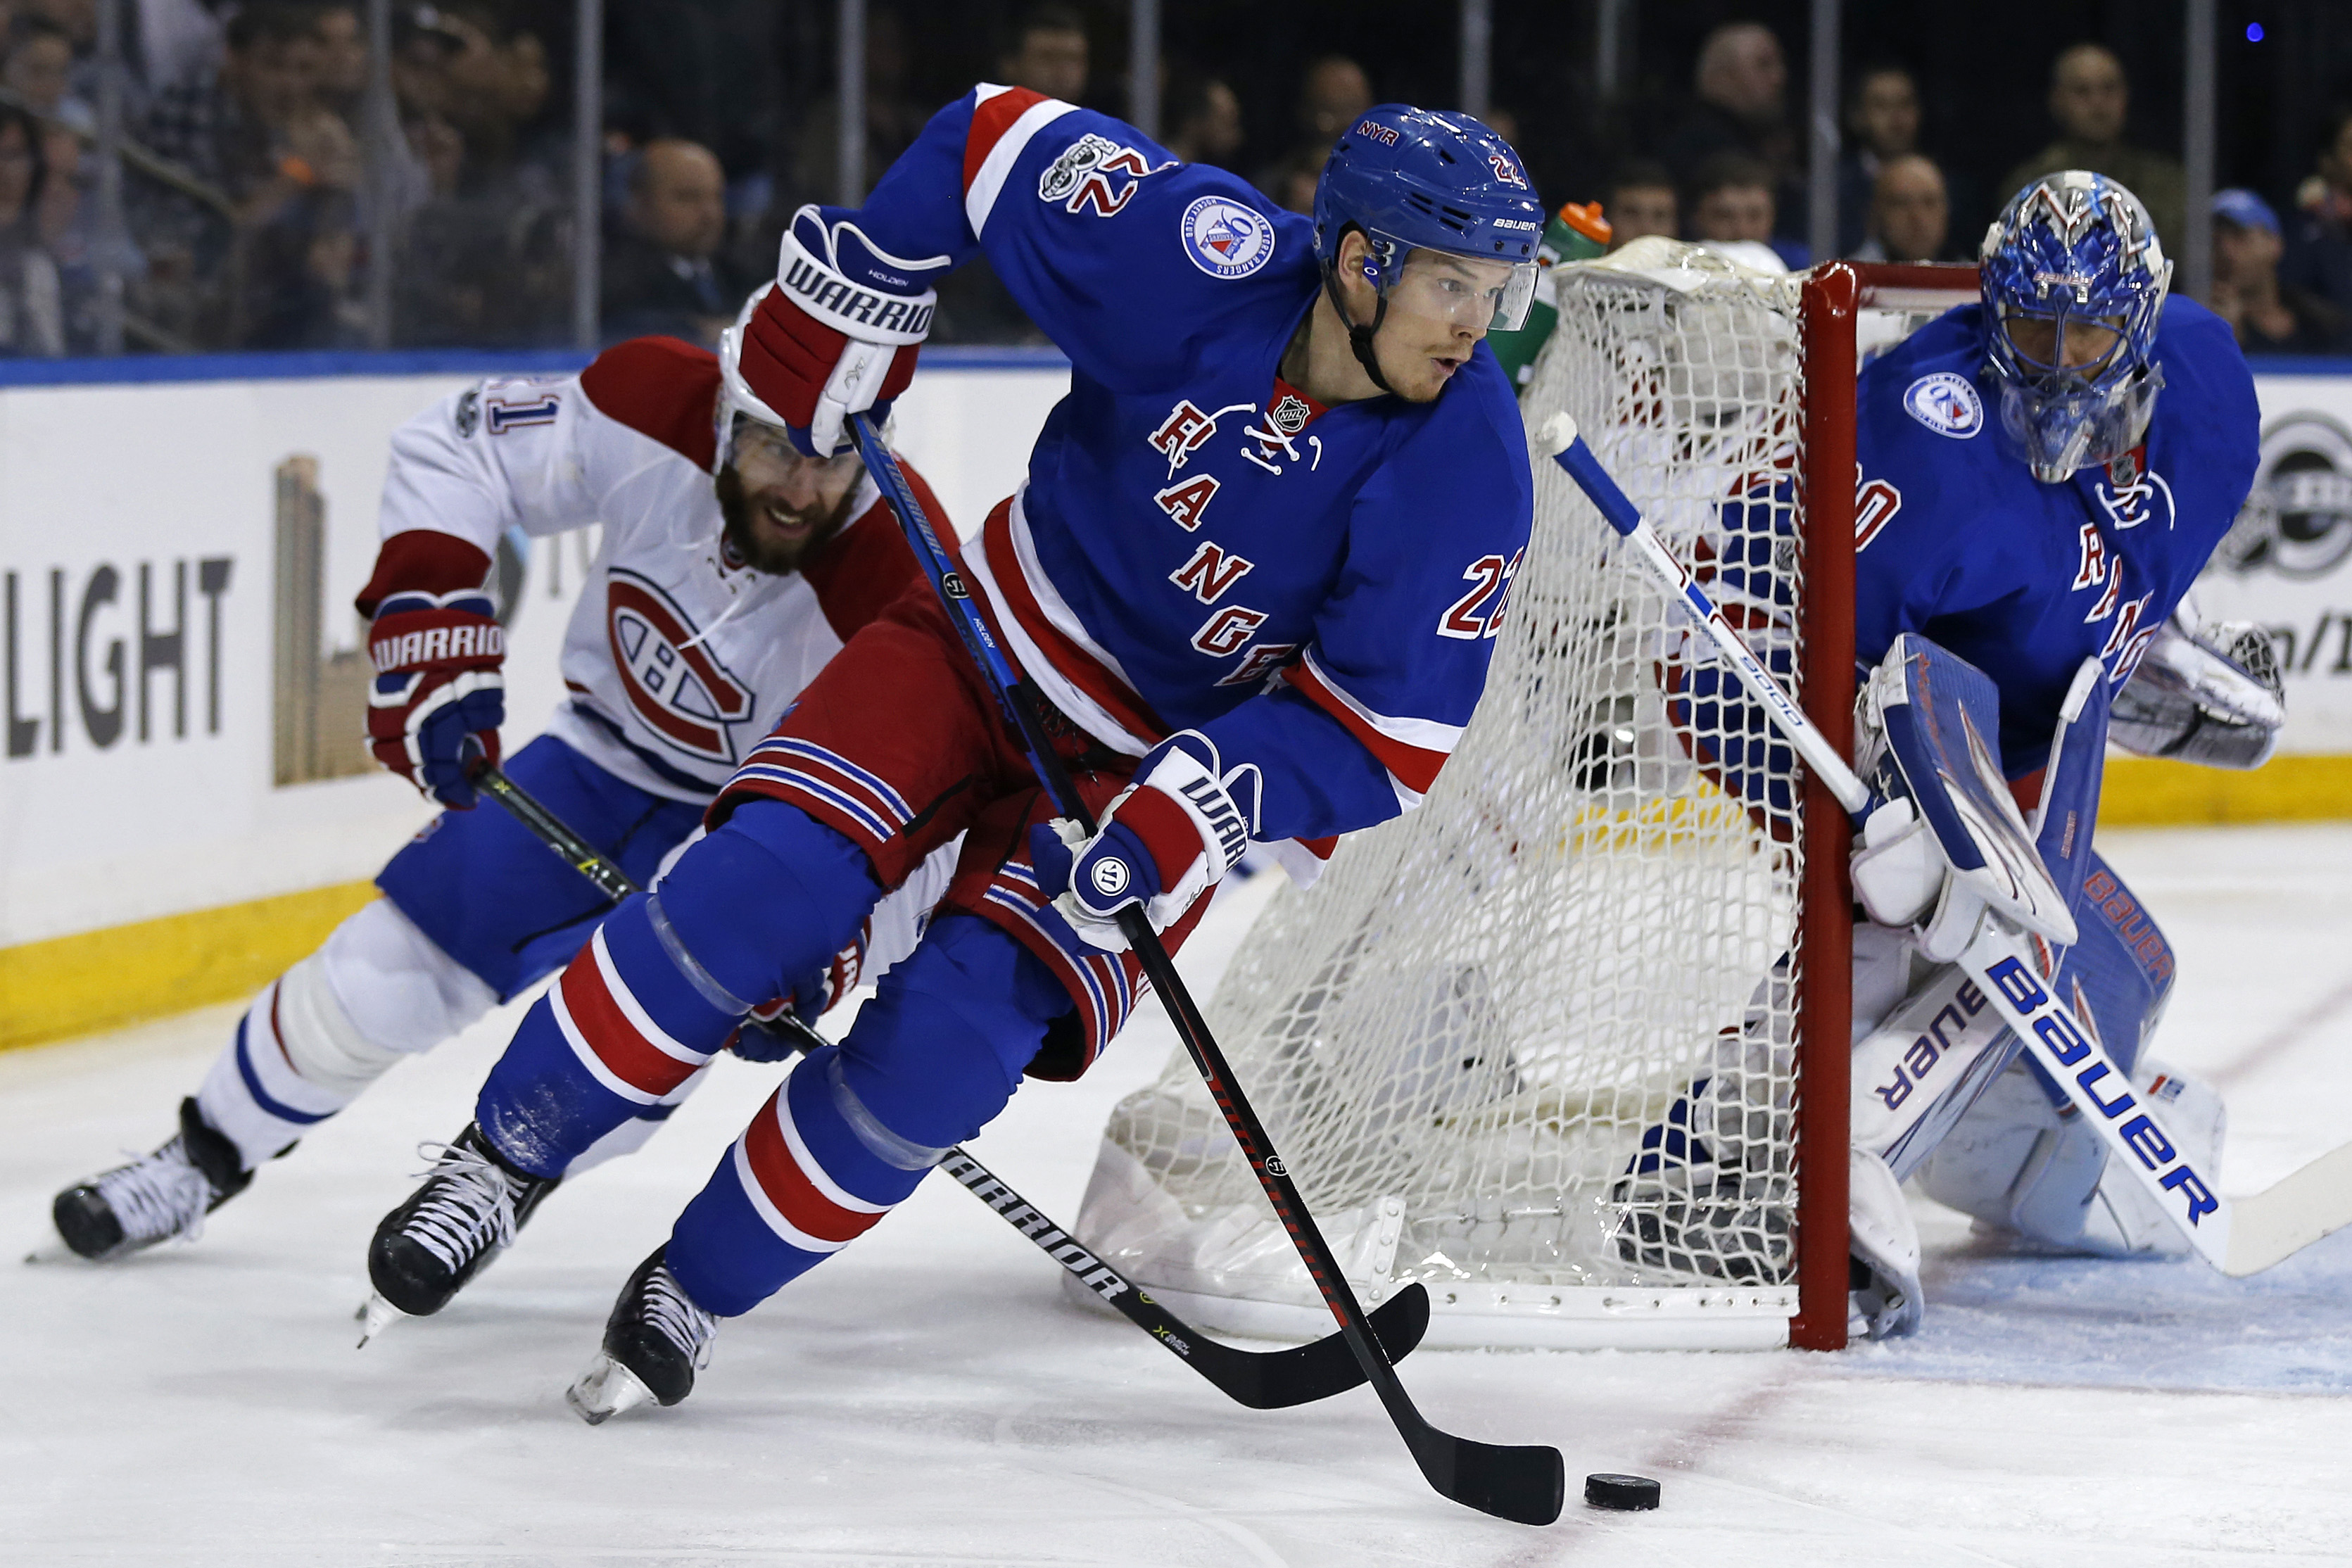 10026553-nhl-stanley-cup-playoffs-montreal-canadiens-at-new-york-rangers